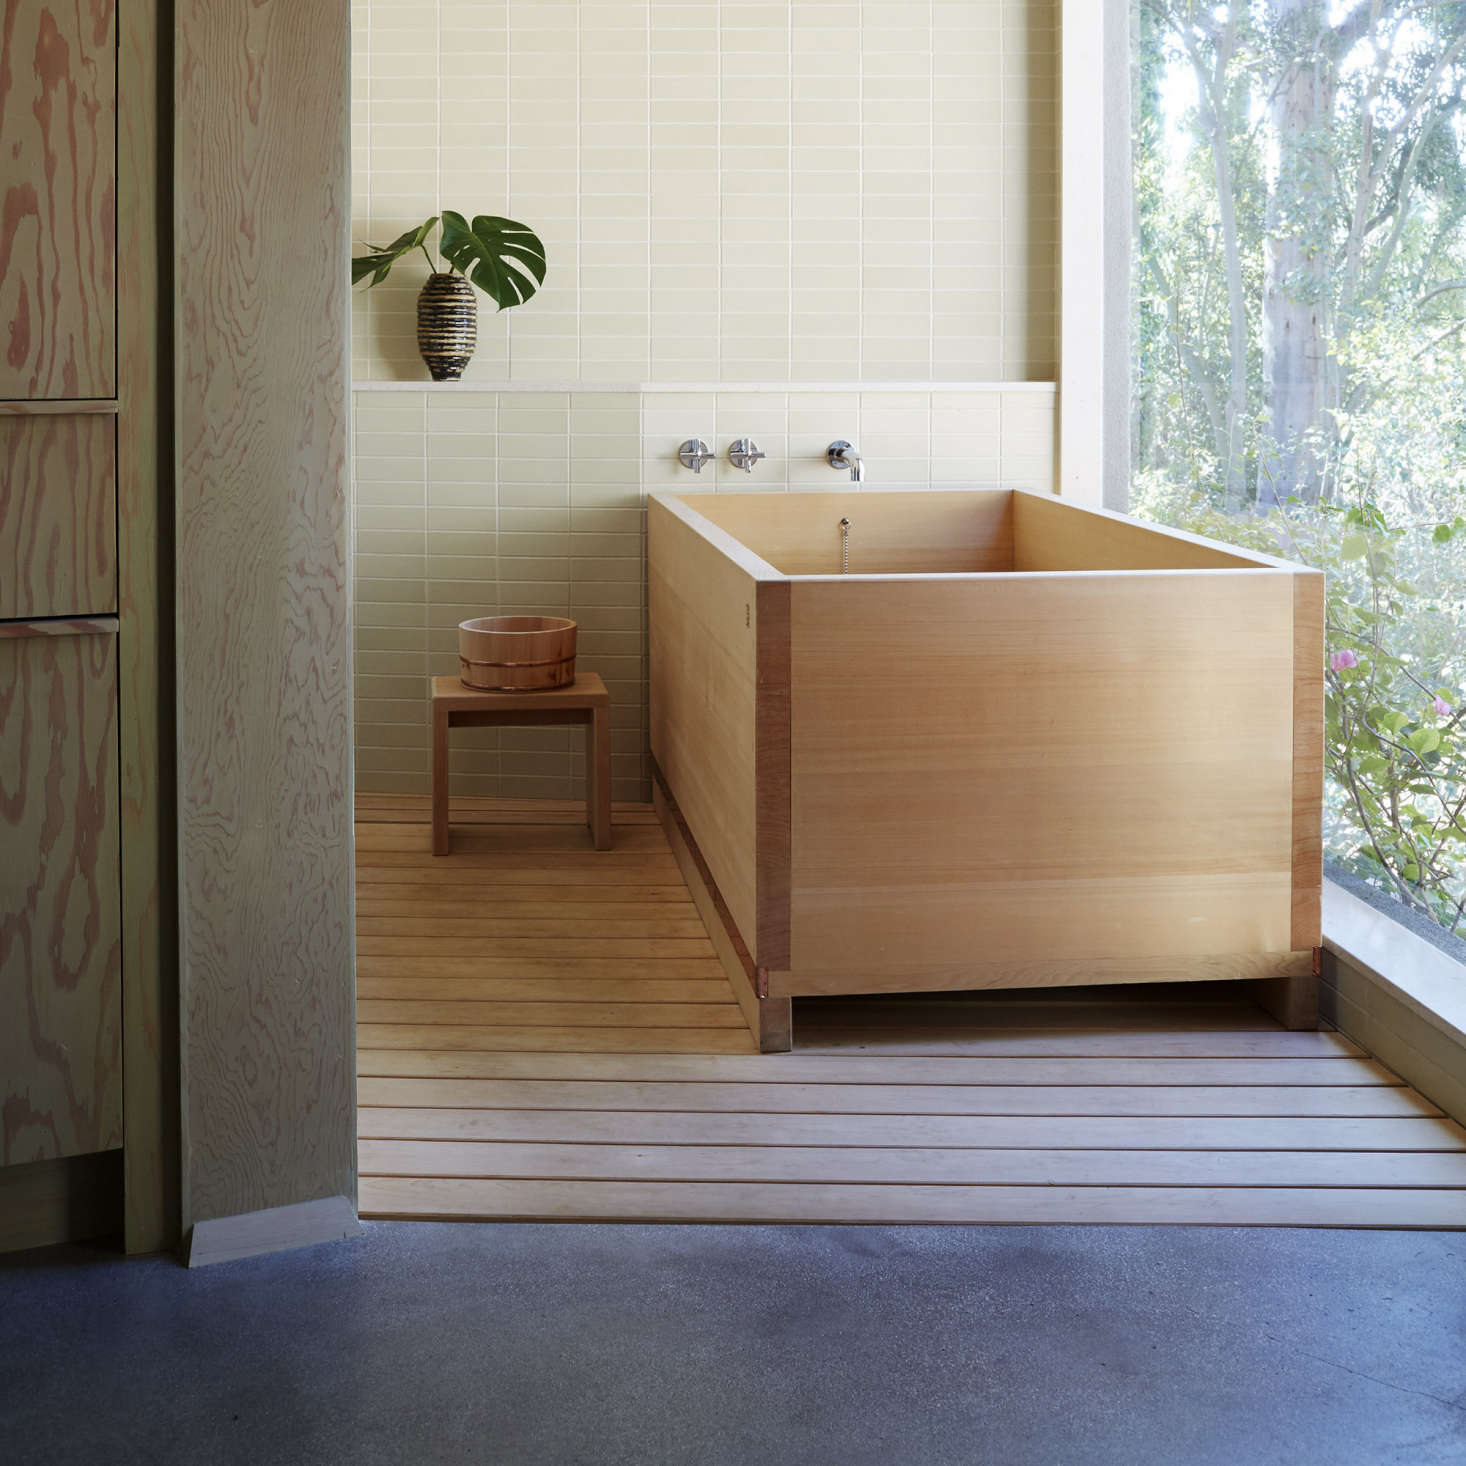 tub open area specialistatlanta share closet bathroom atlanta s hinoki portfolio remodeling healing water shower